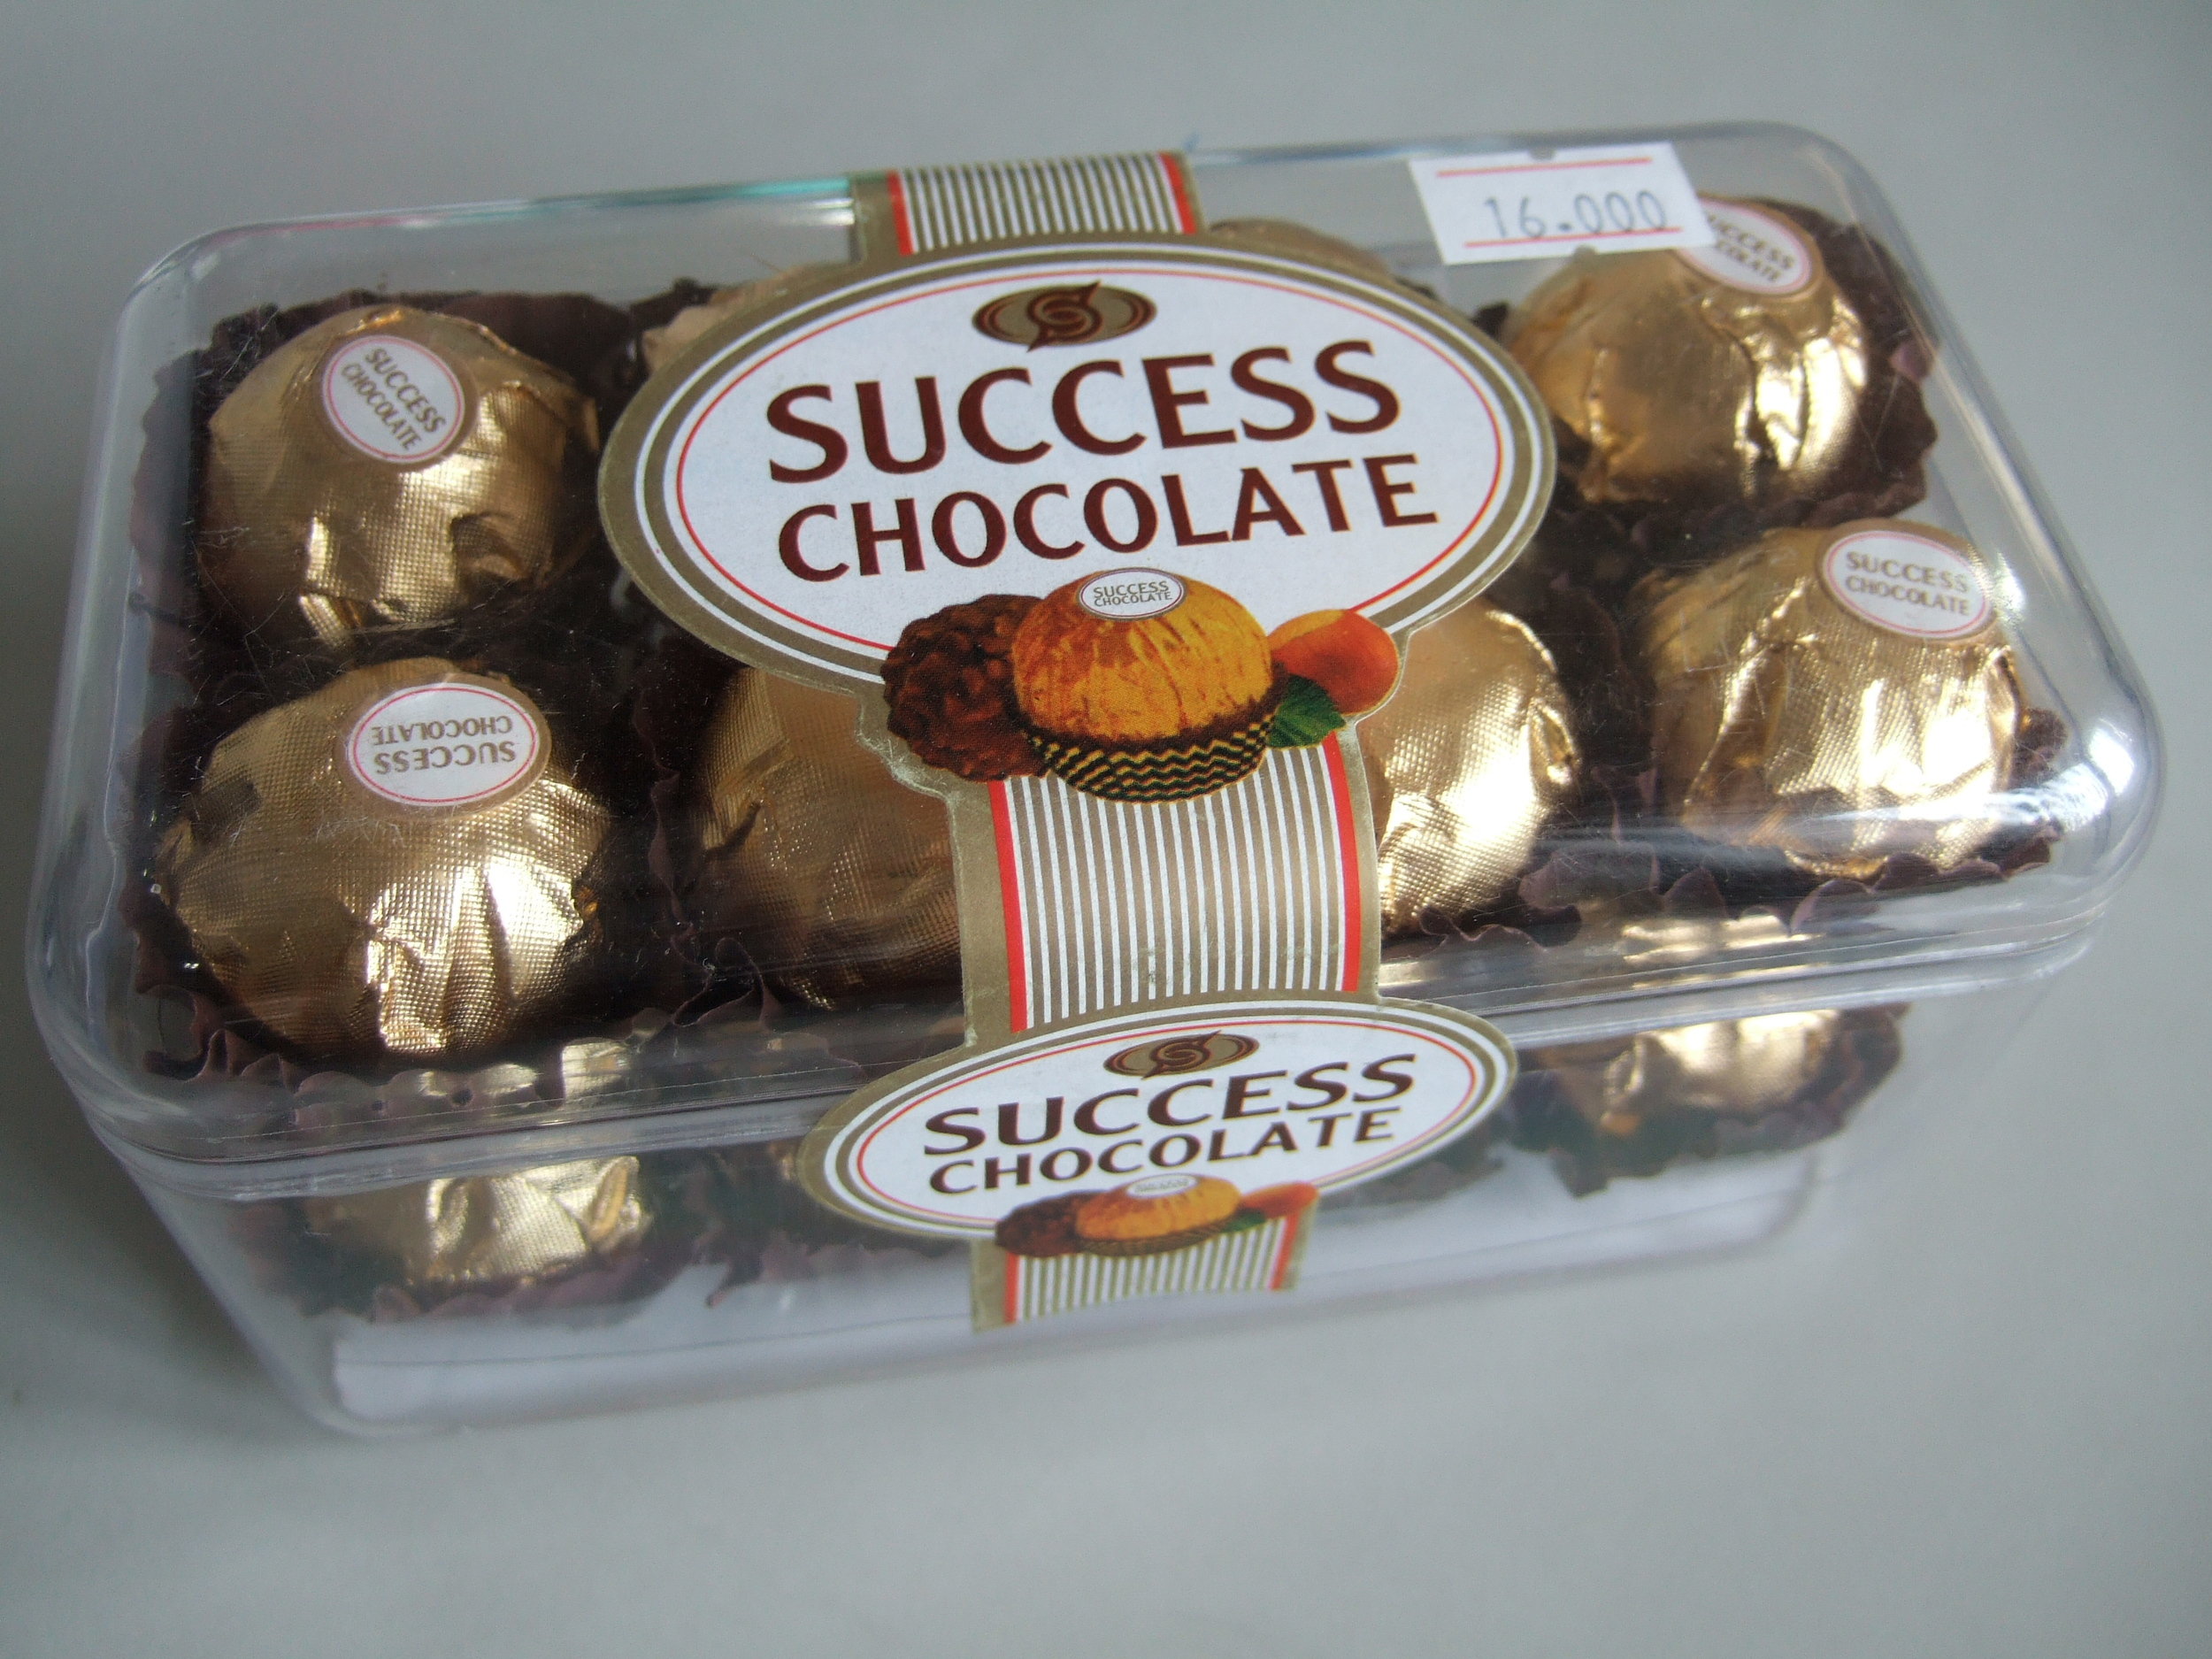 Success chocolate